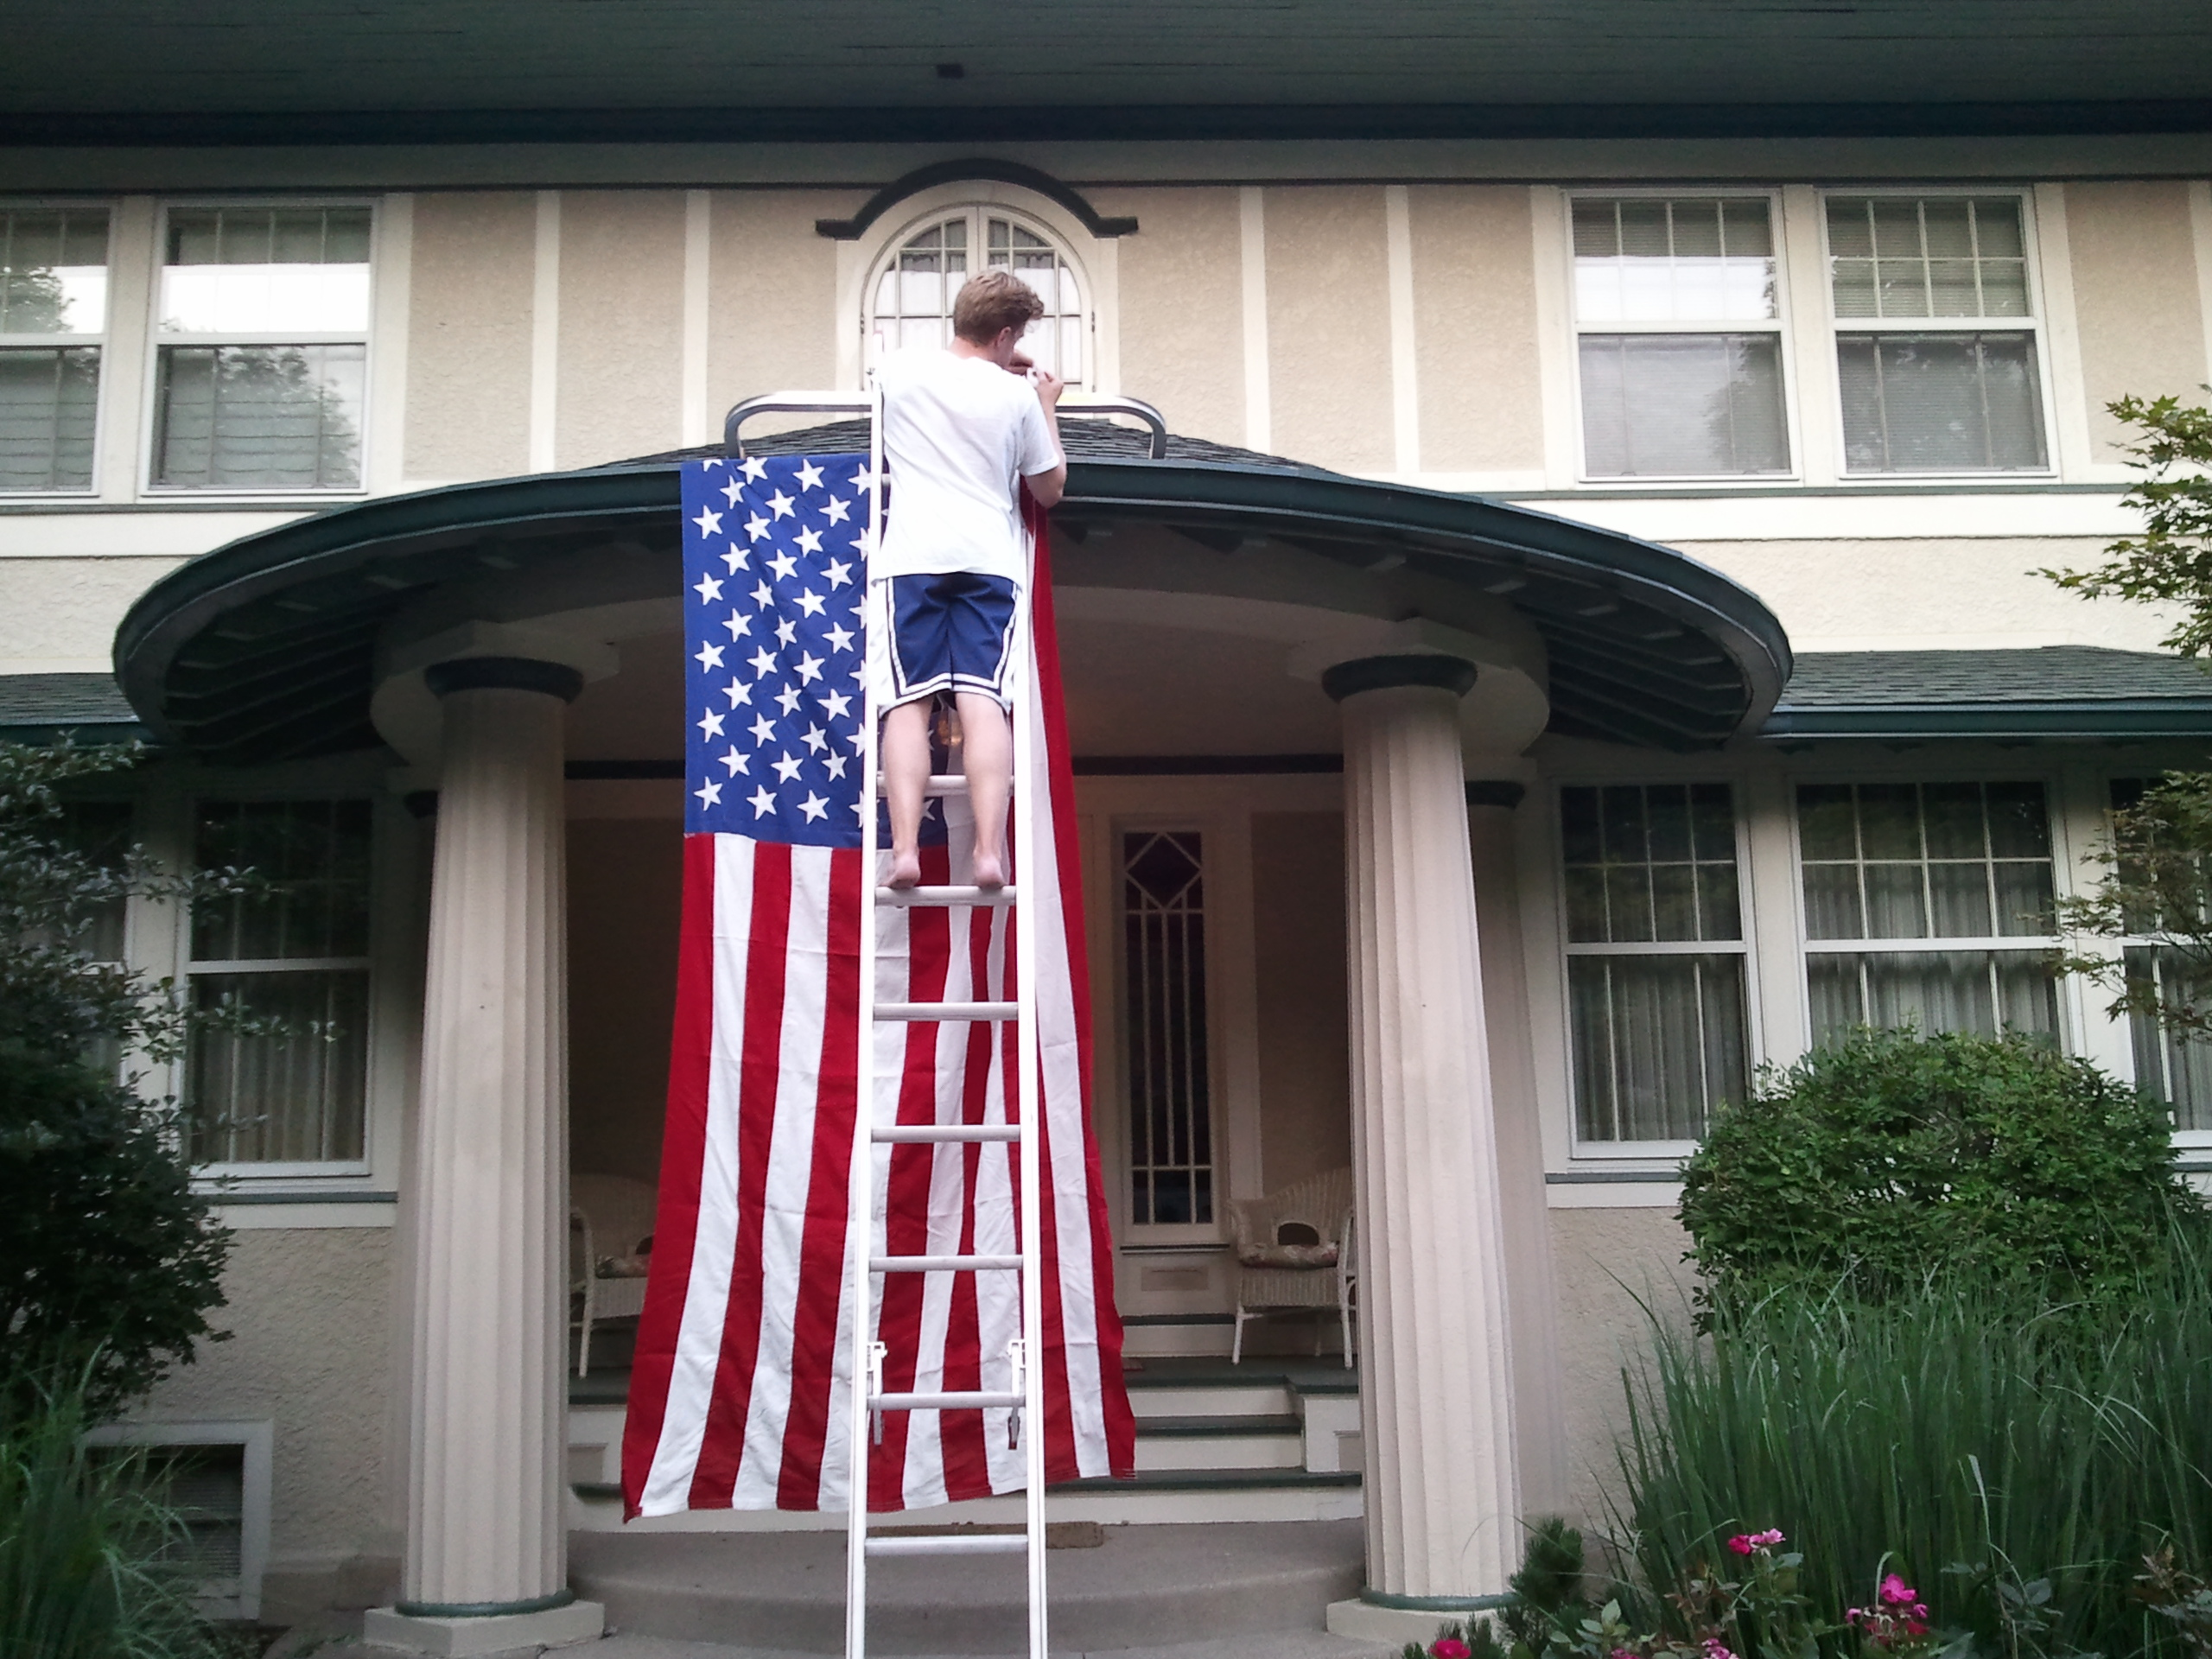 Hanging up Old Glory for the 4th. TFM.